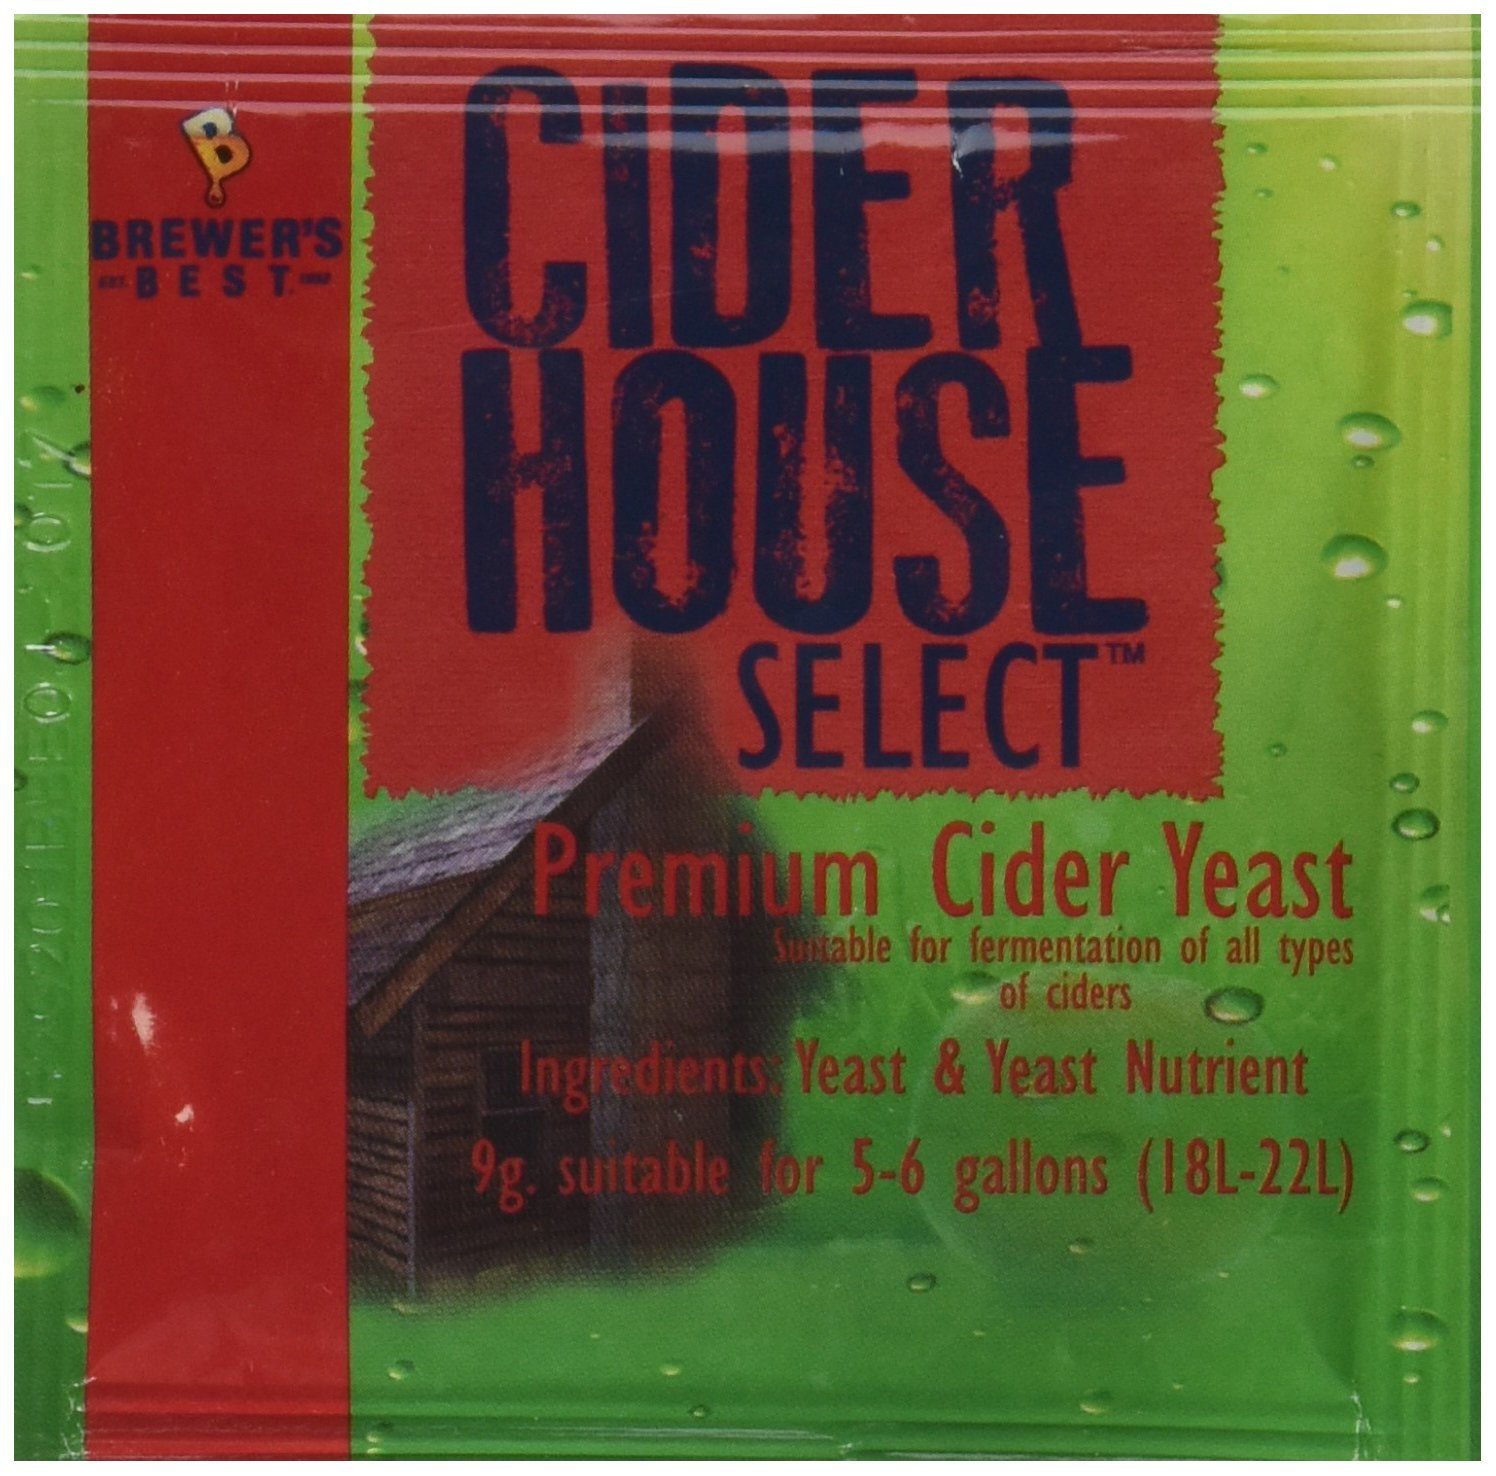 Cider House Select Premium Cider Yeast, 2360